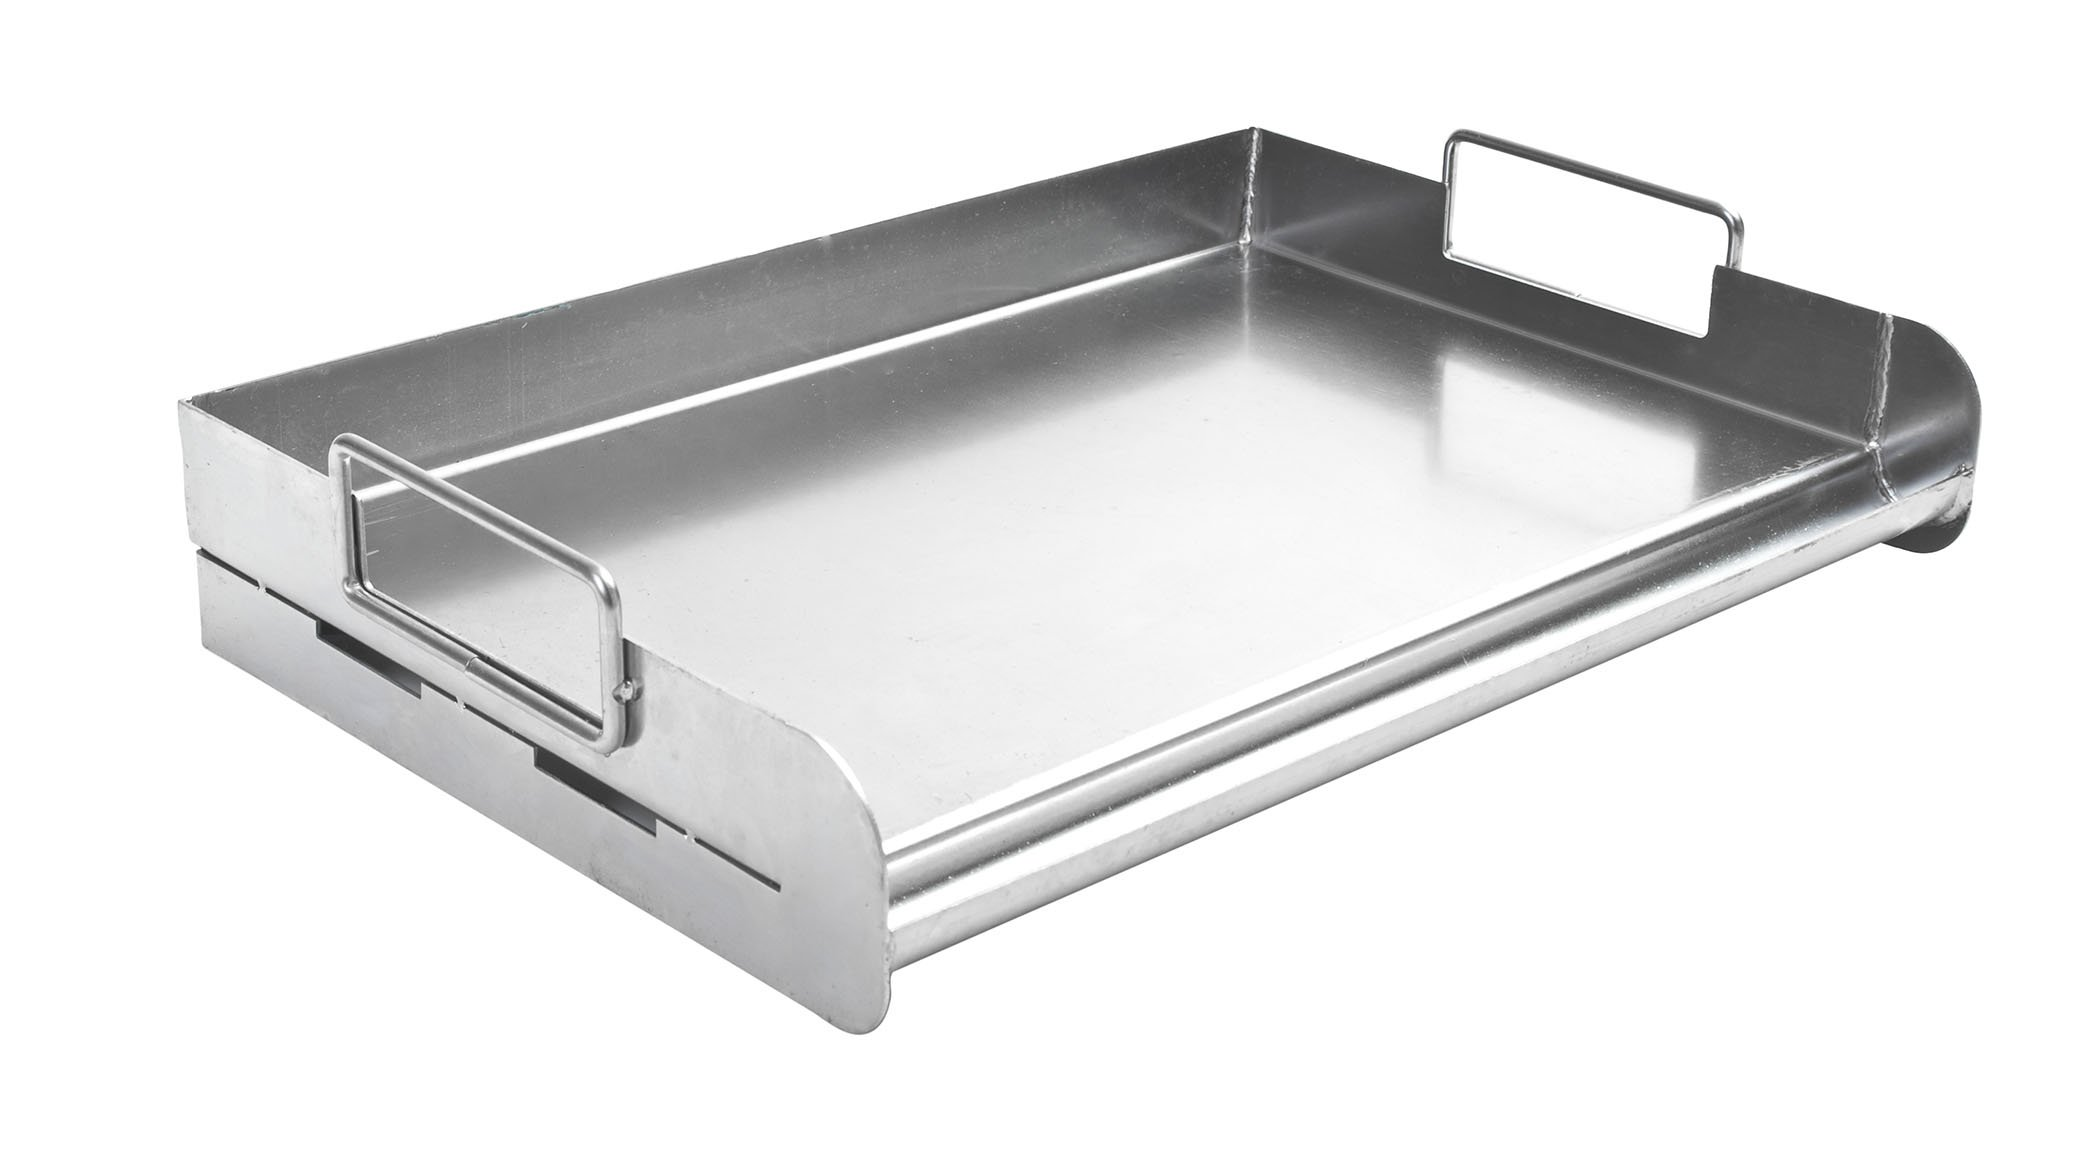 Charcoal Companion CC3500 Stainless Steel Pro Grill Griddle by Charcoal Companion